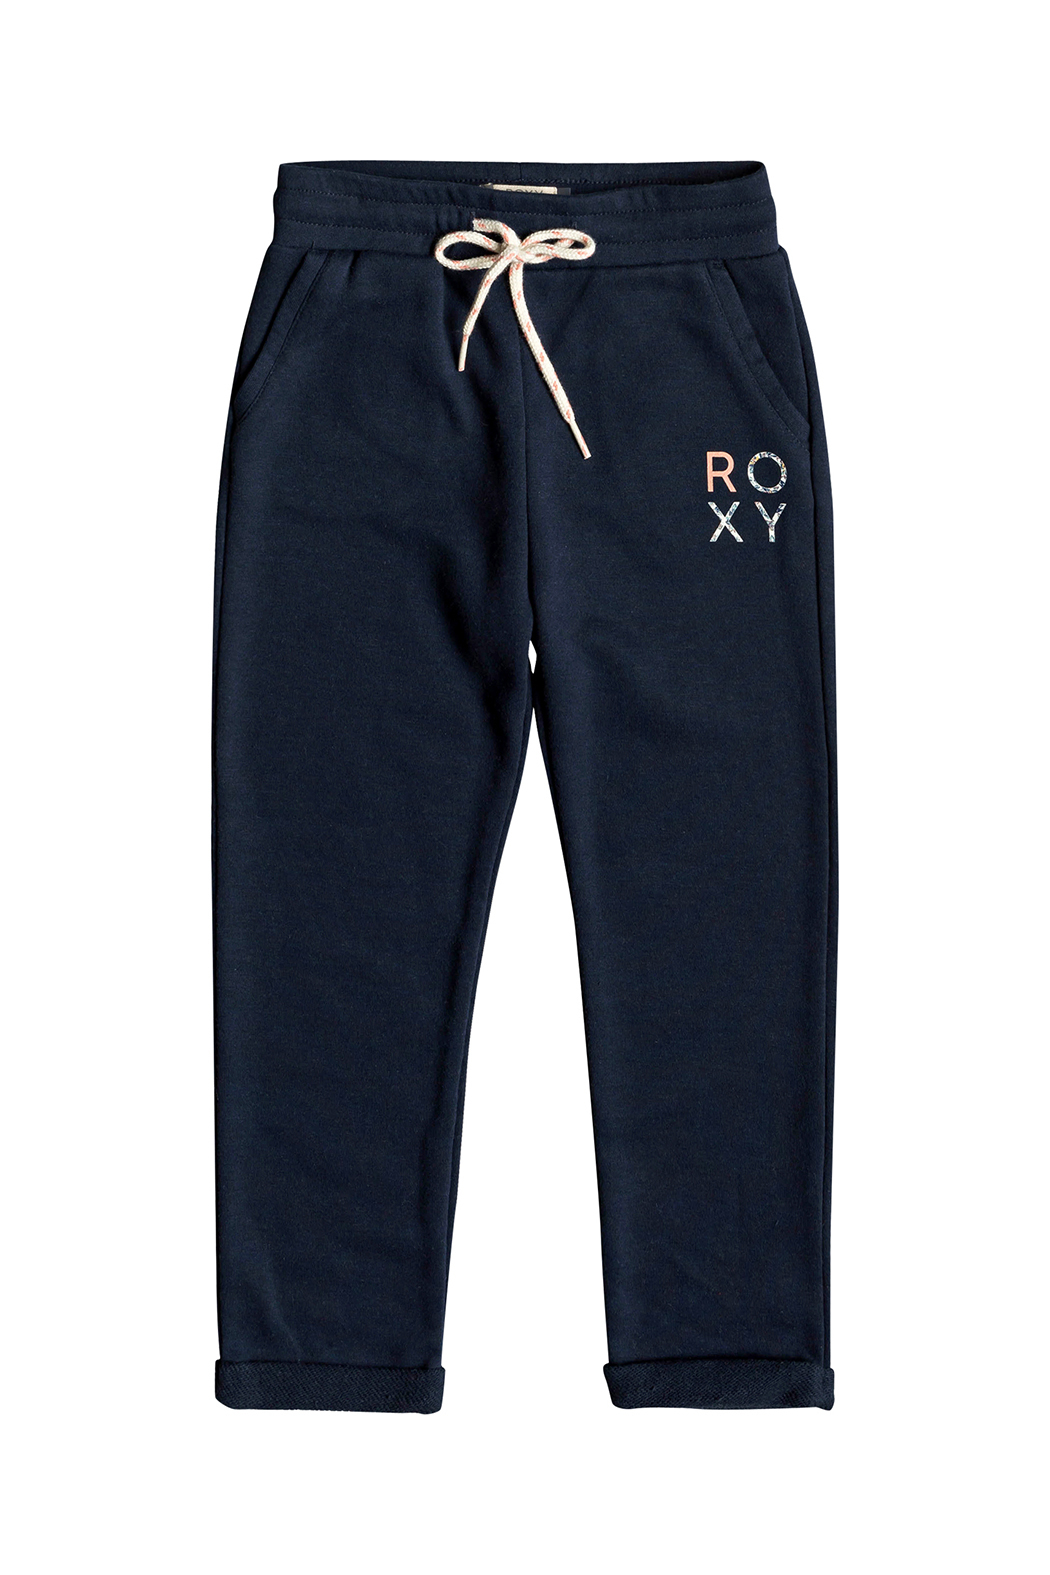 Roxy Let Her Song Jogger Pants - Front Cropped Image